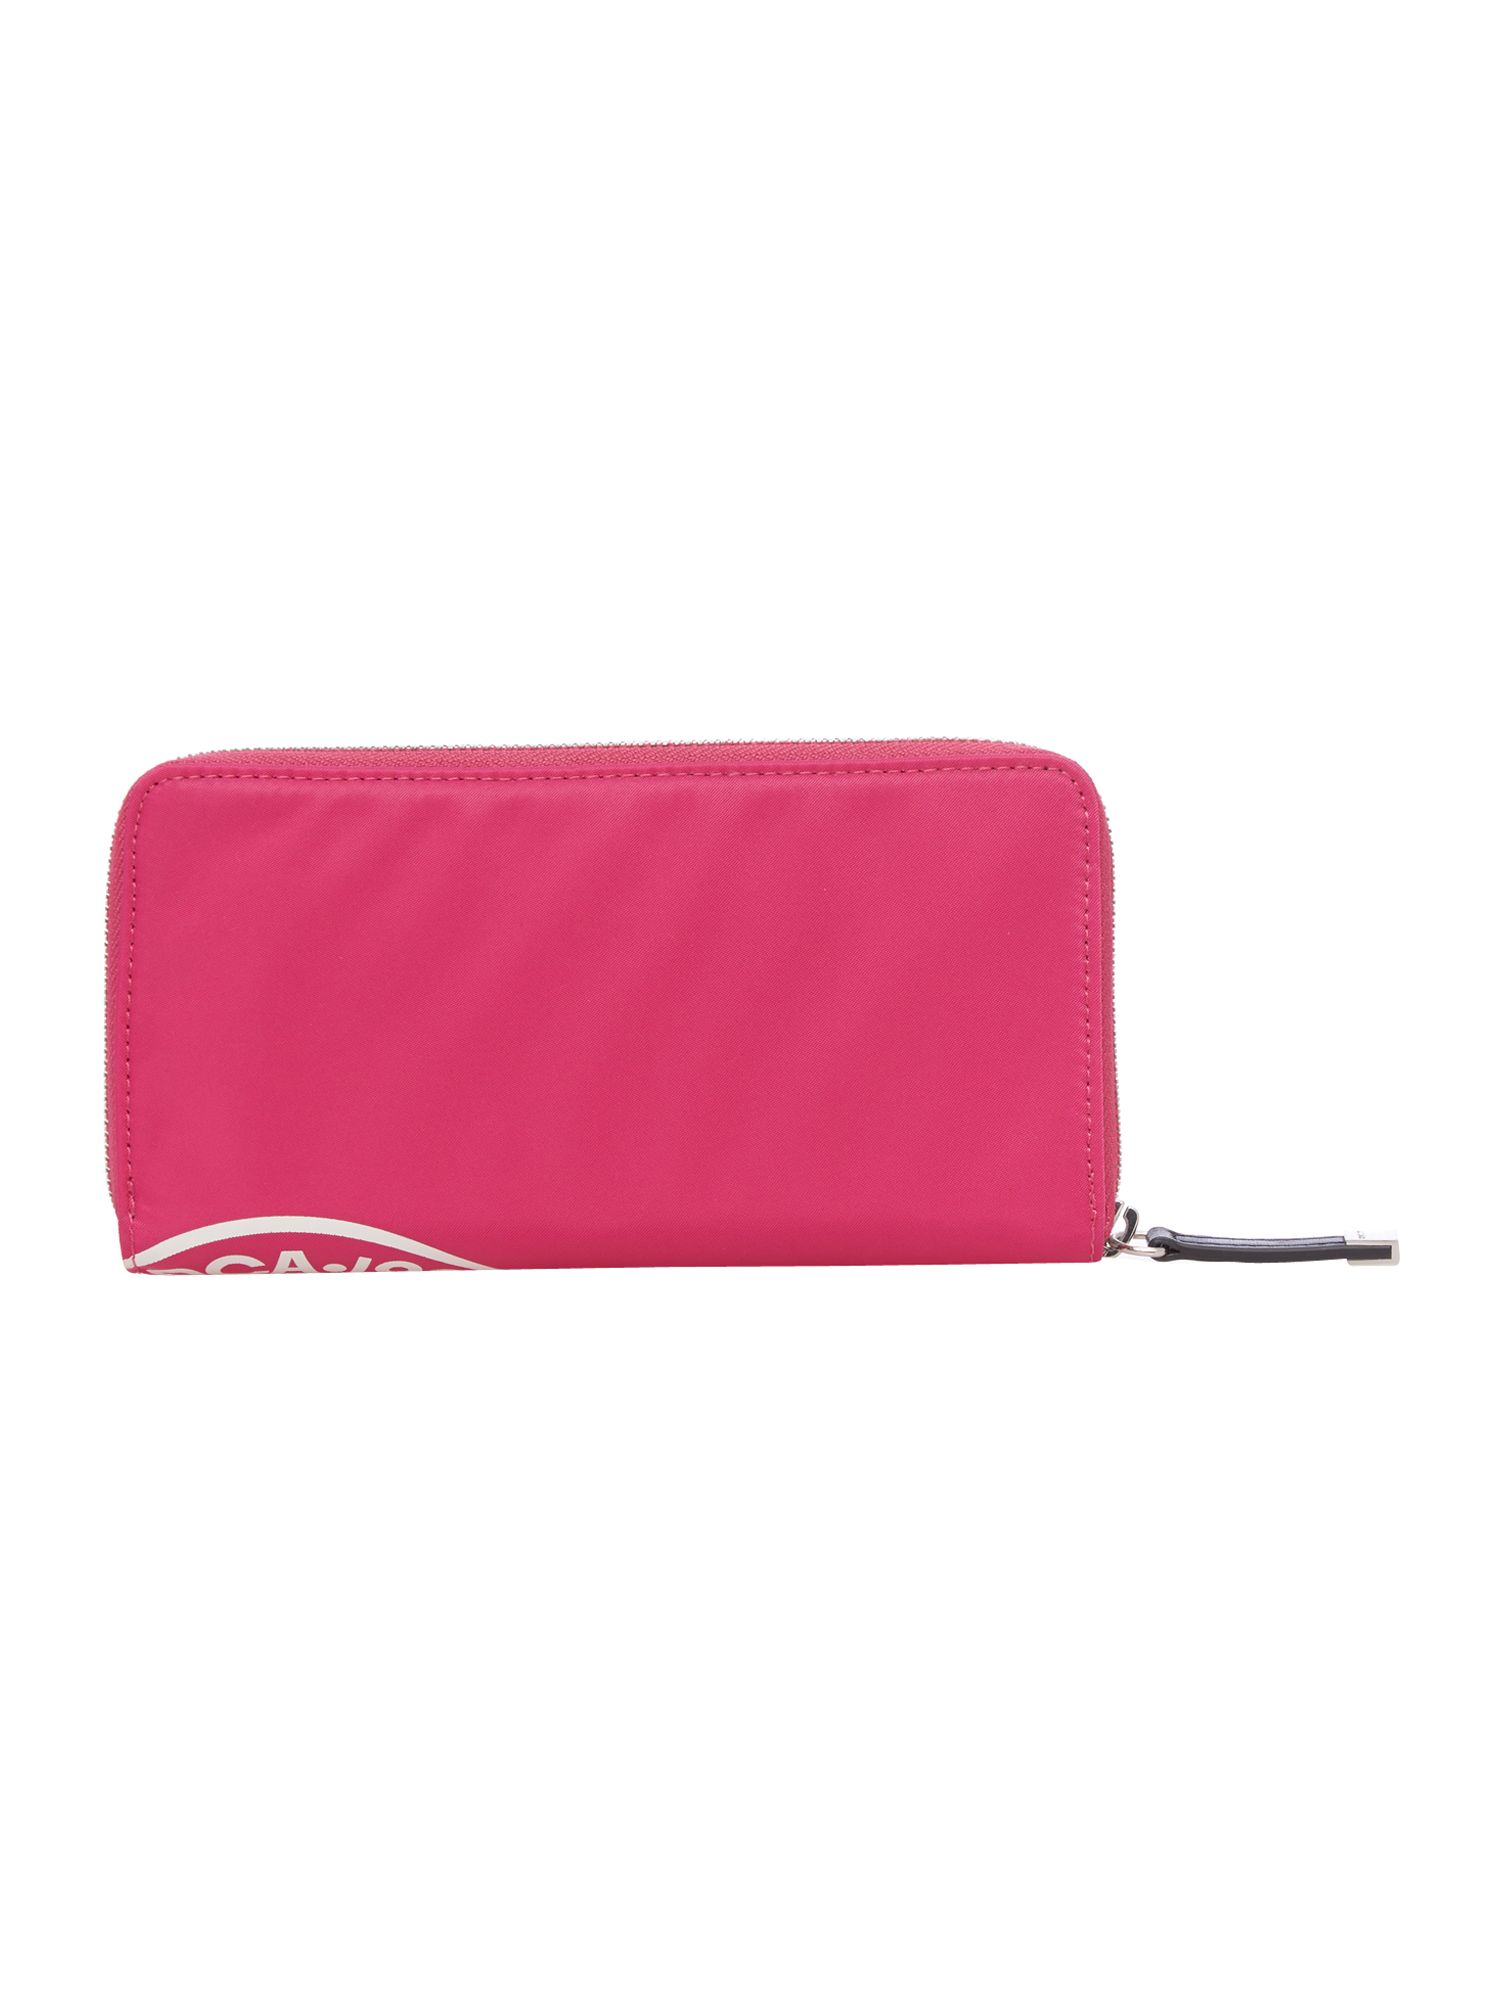 Nylon logo pink large zip around purse